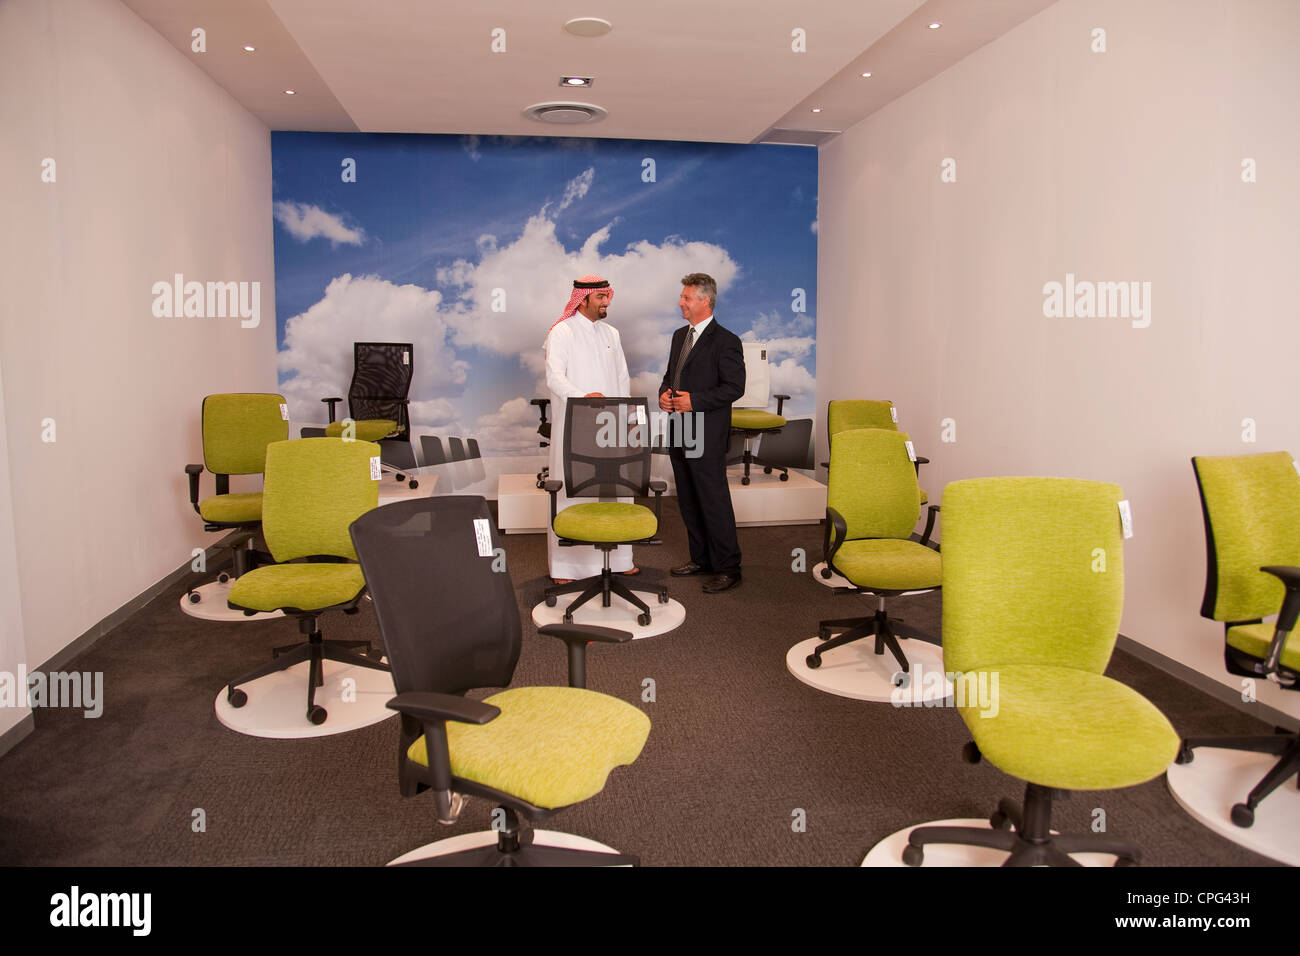 Salesman assisting arab man shopping for office chairs in furniture store. - Stock Image